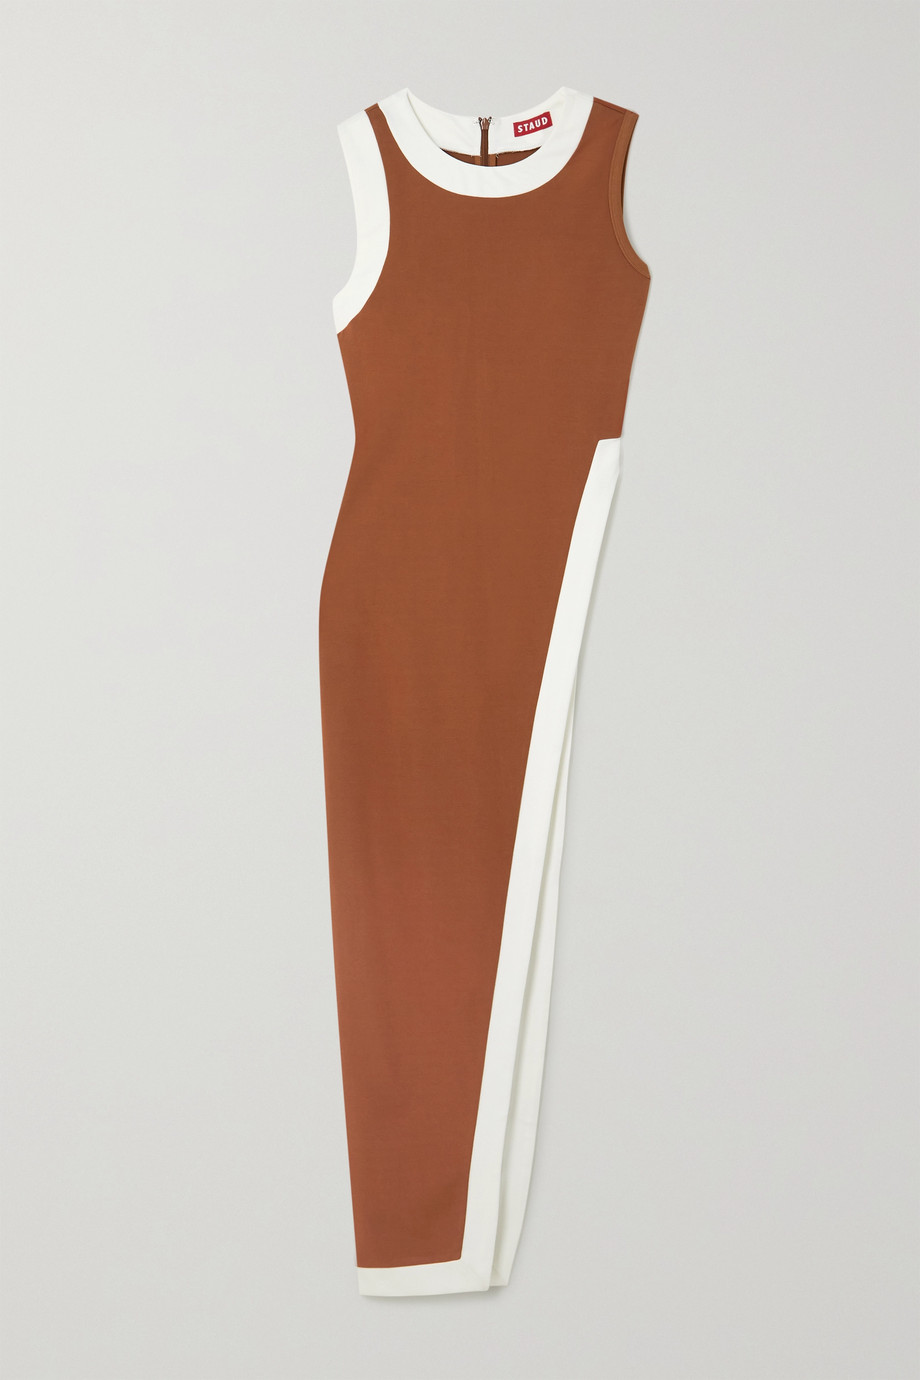 STAUD Asymmetric two-tone stretch-ponte top